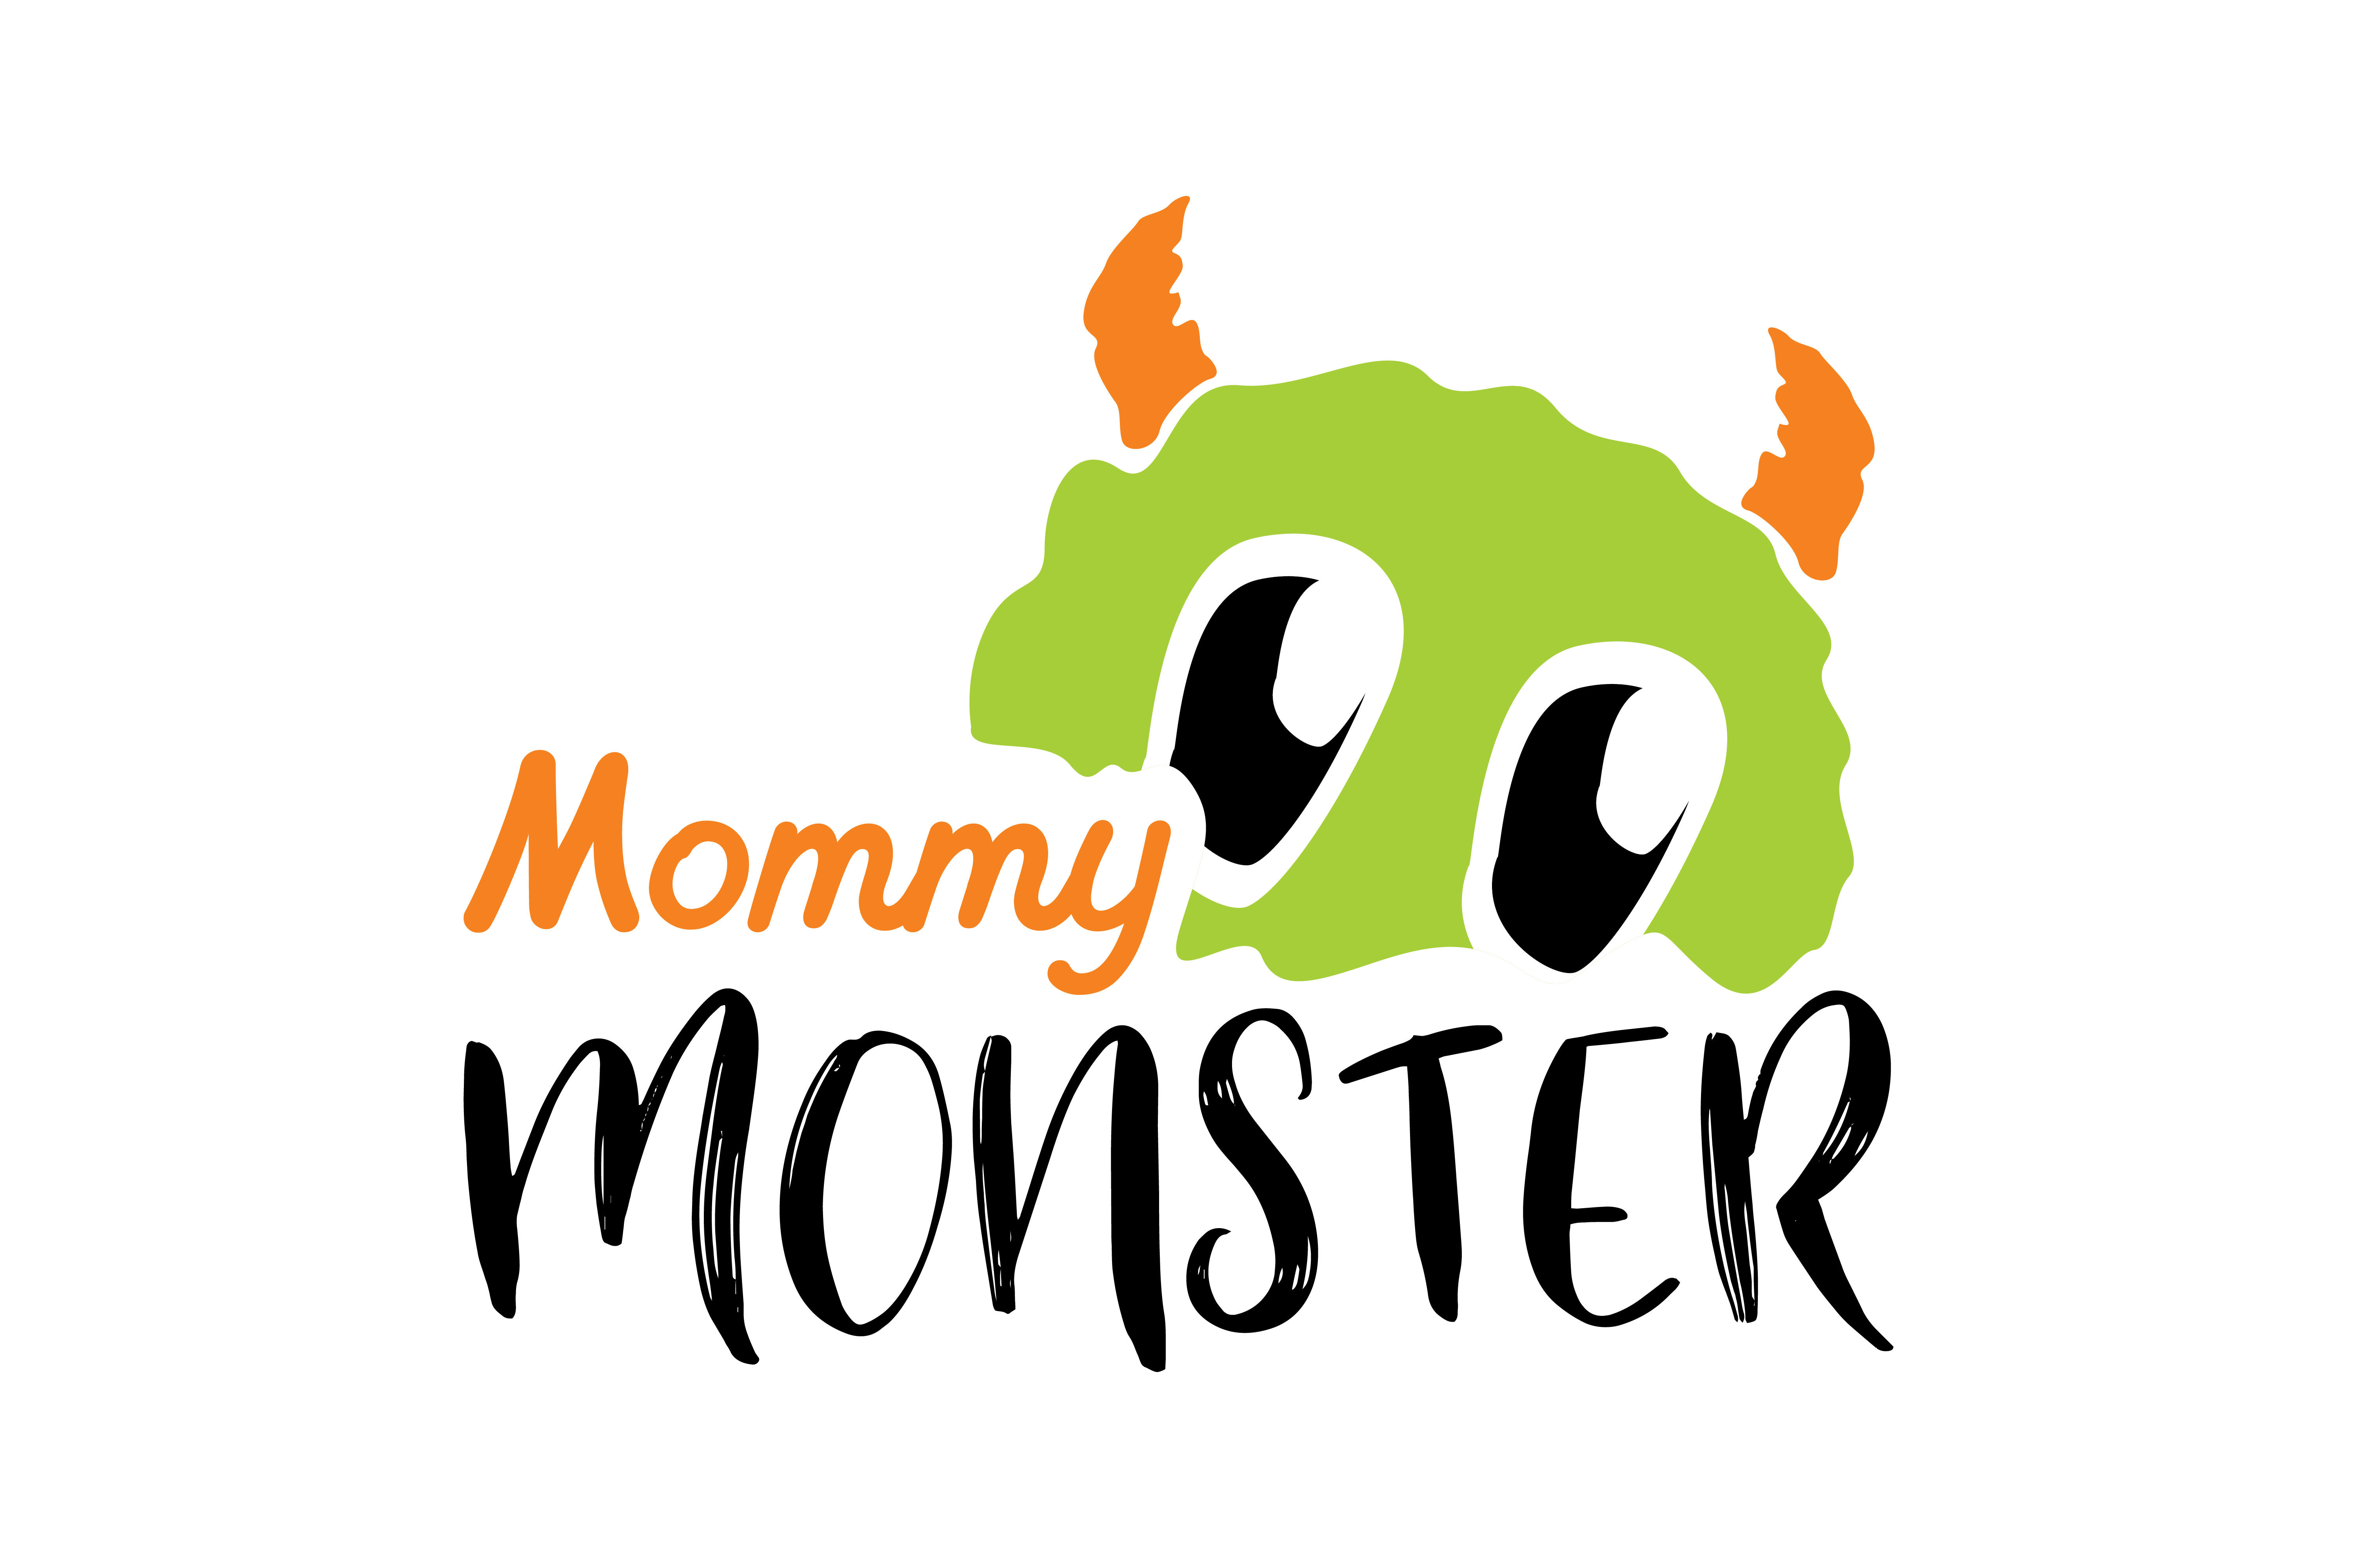 Mommy Monster Graphic By Thelucky Creative Fabrica